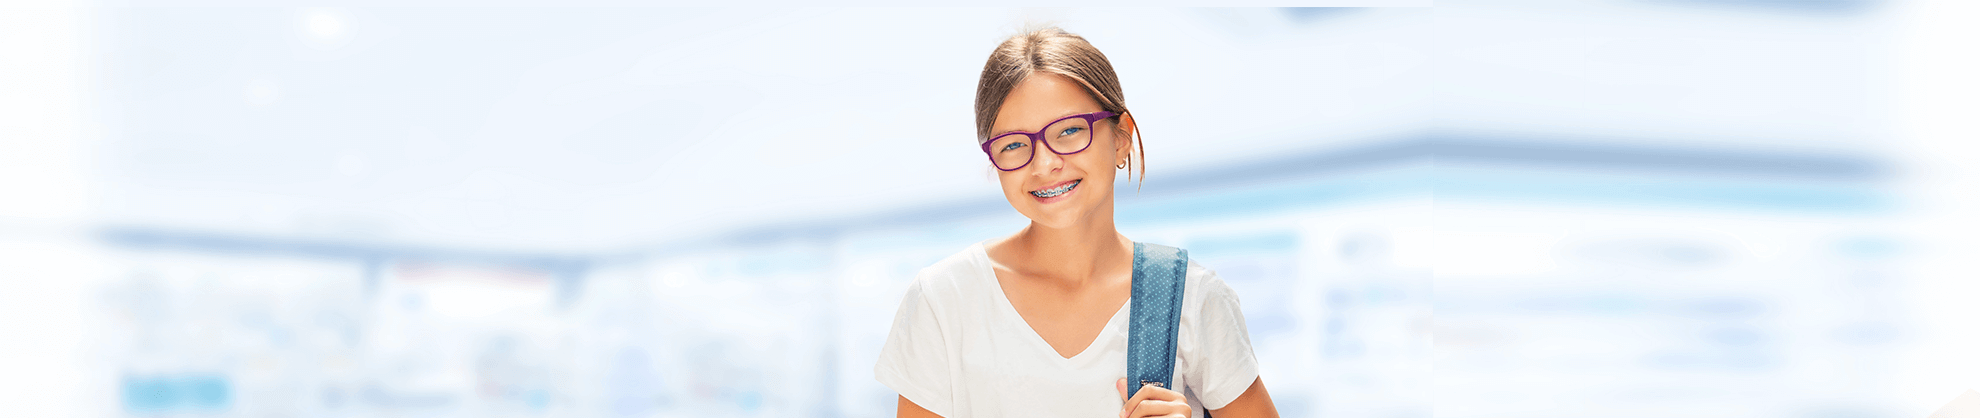 Interceptive Orthodontics in Midland, TX